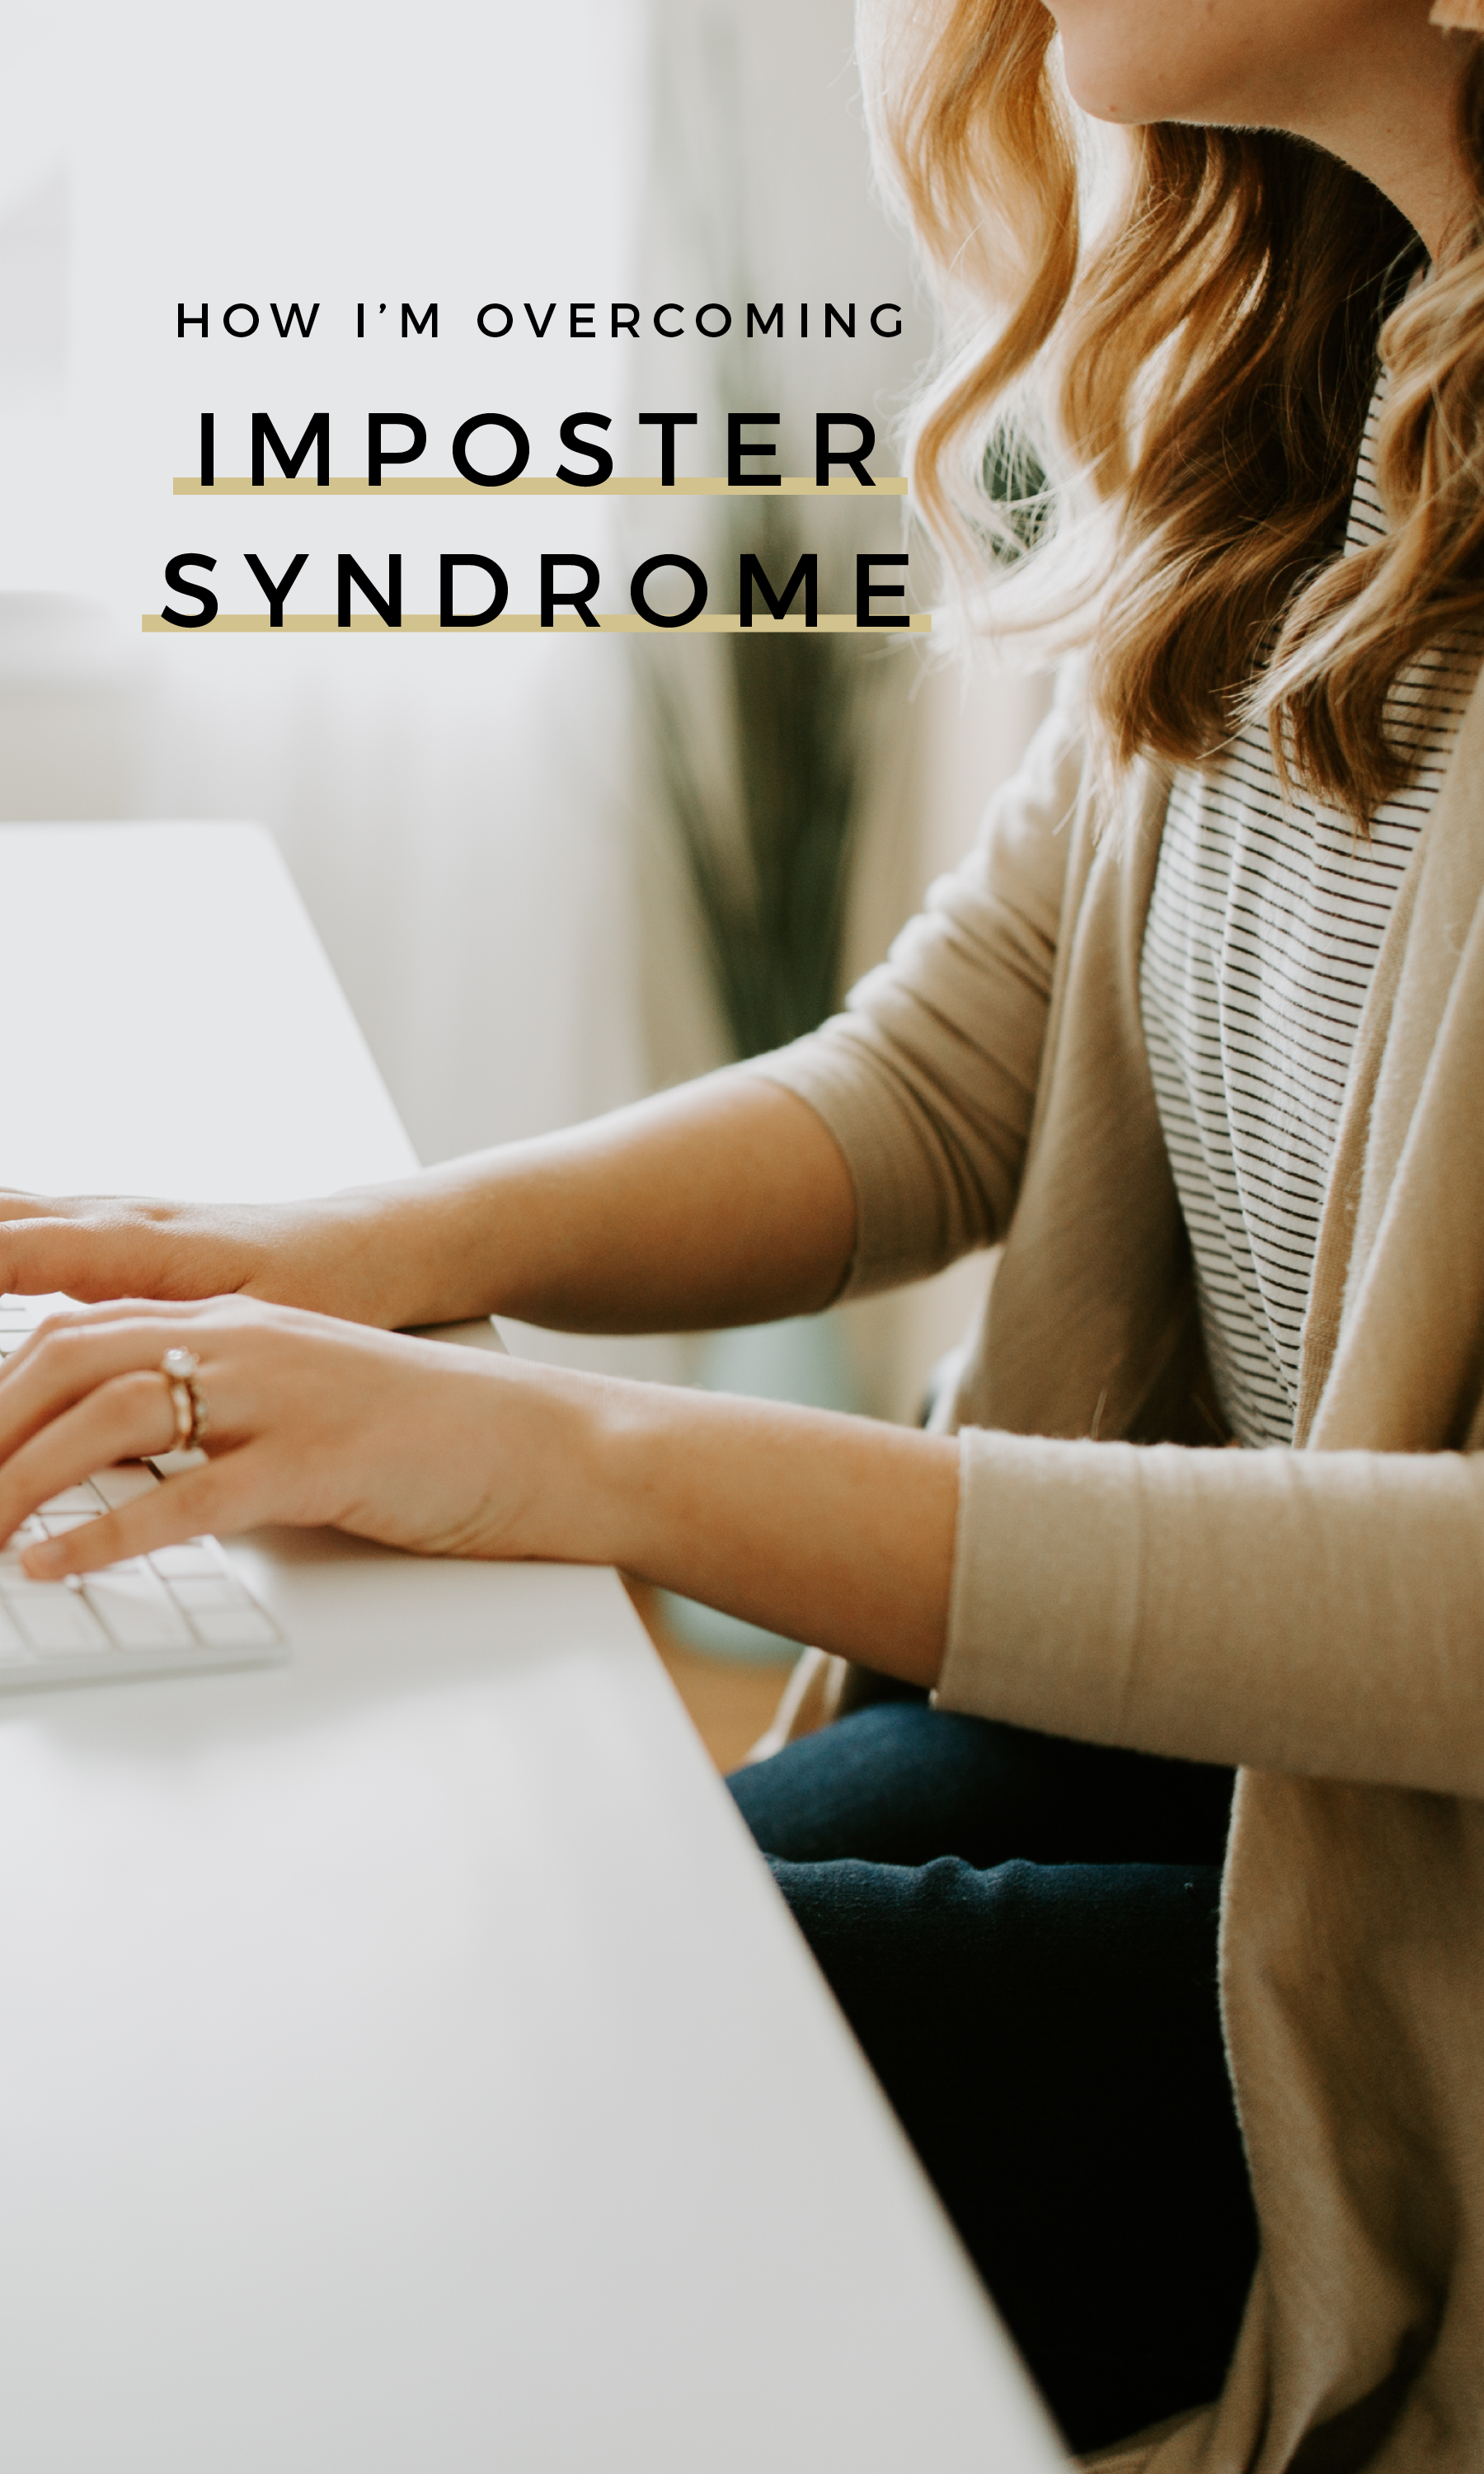 How I'm Overcoming Imposter Syndrome